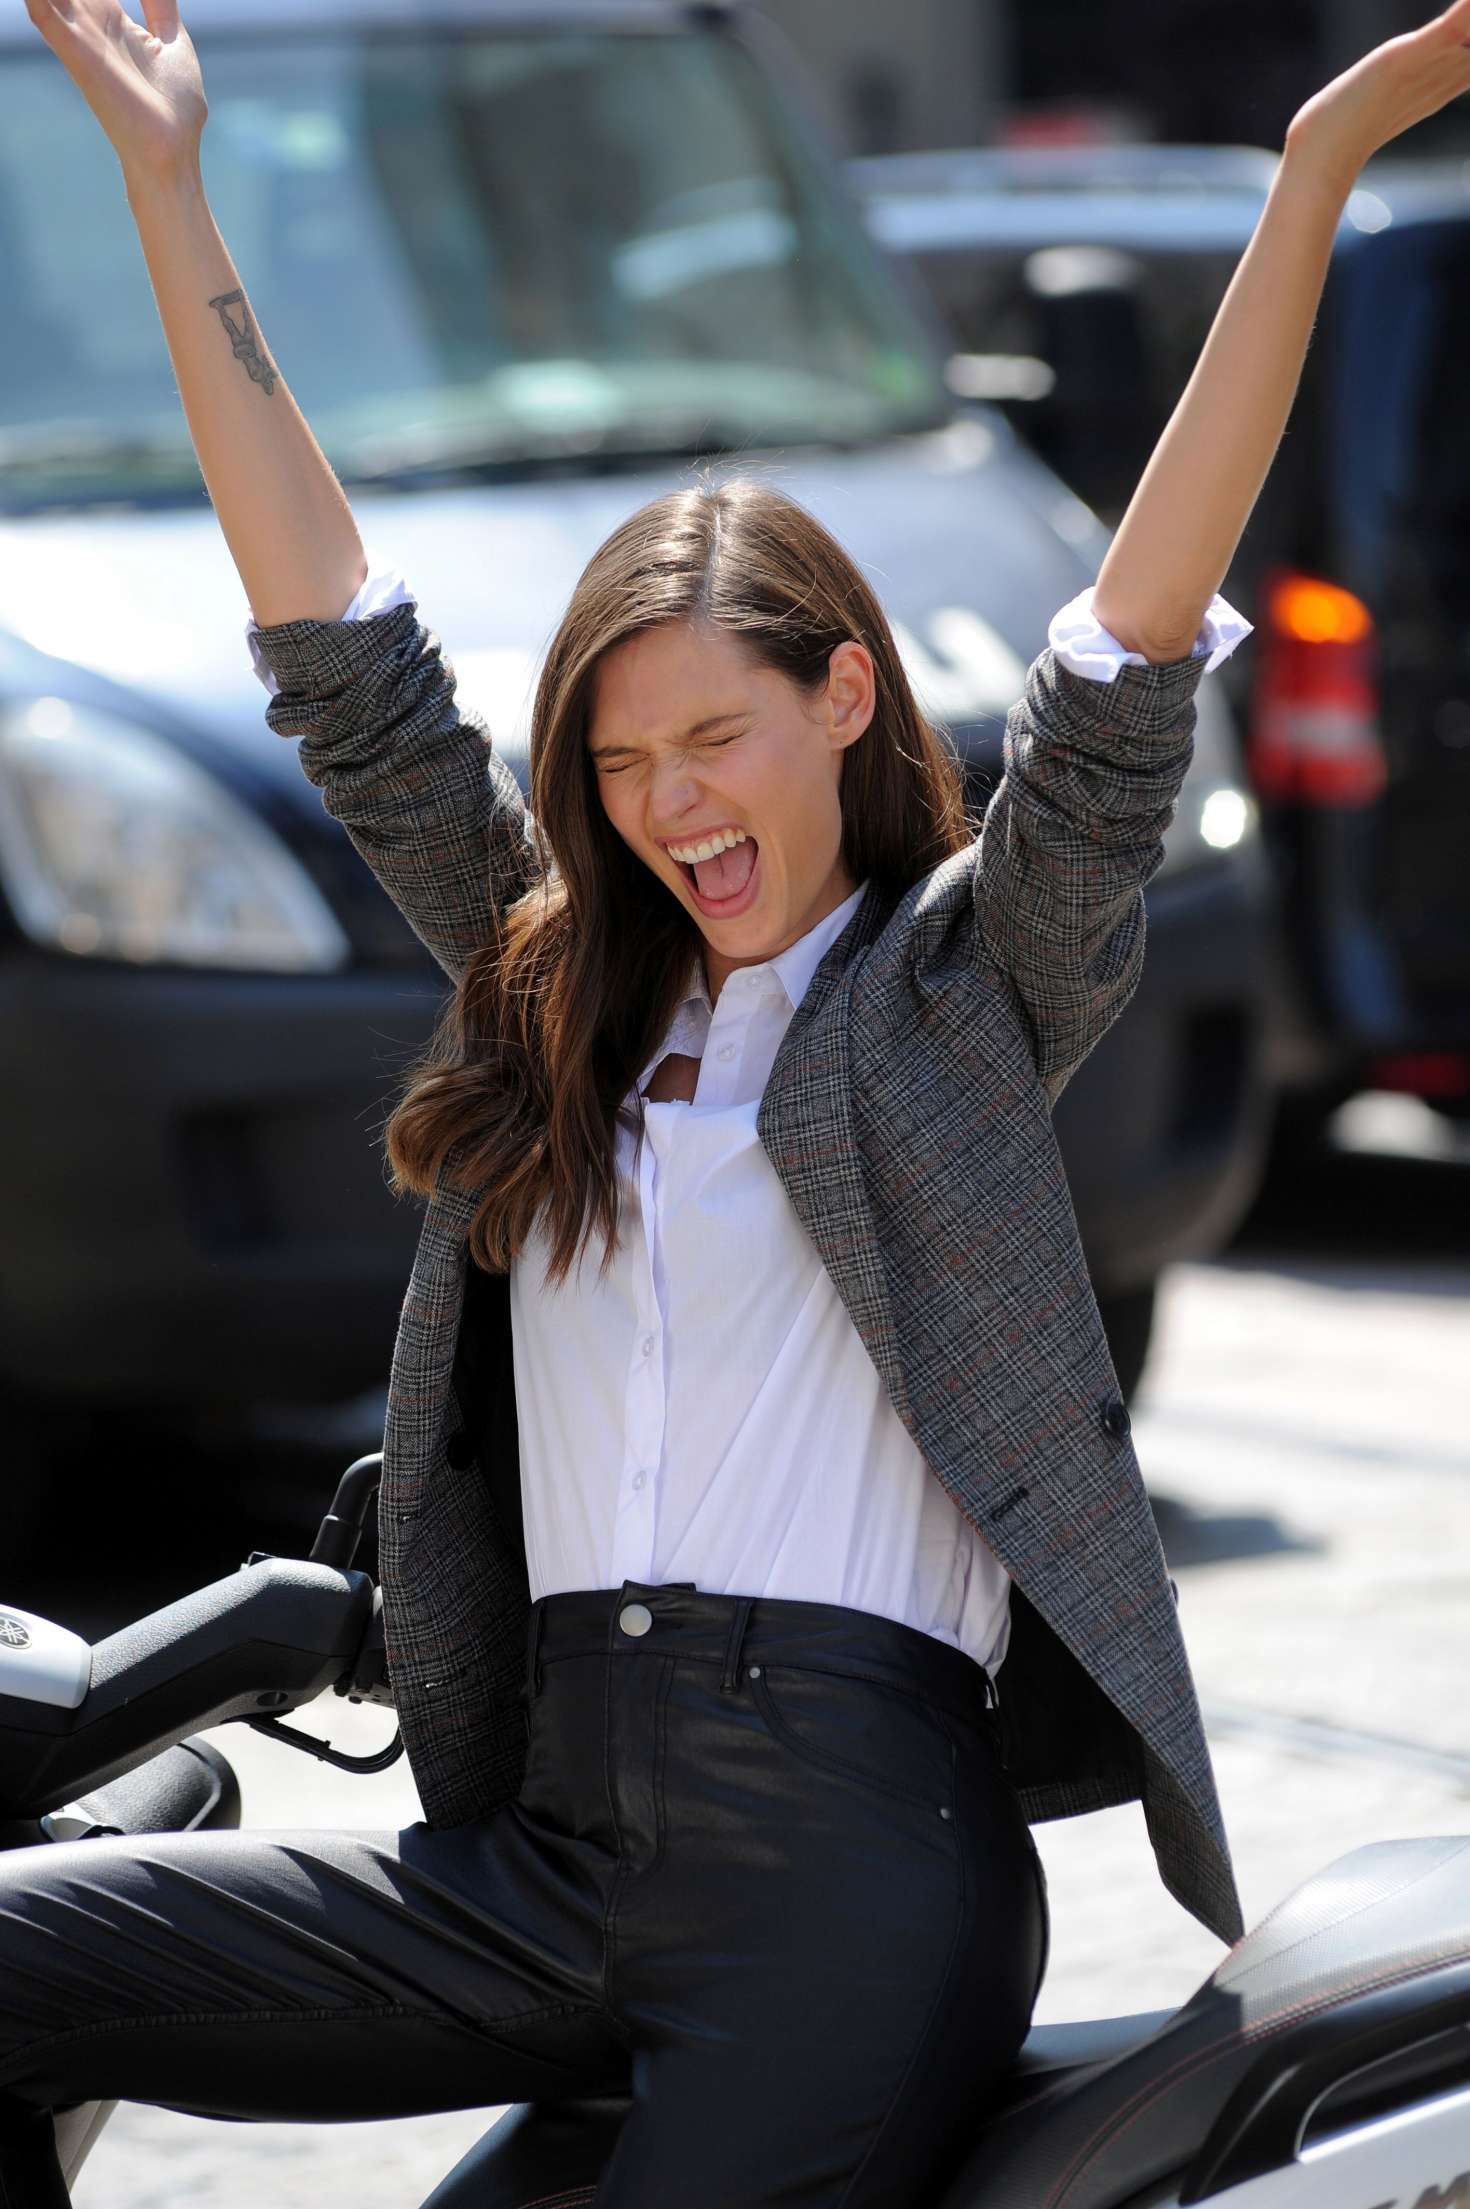 Bianca Balti on set for the OVS Campaign in Milan